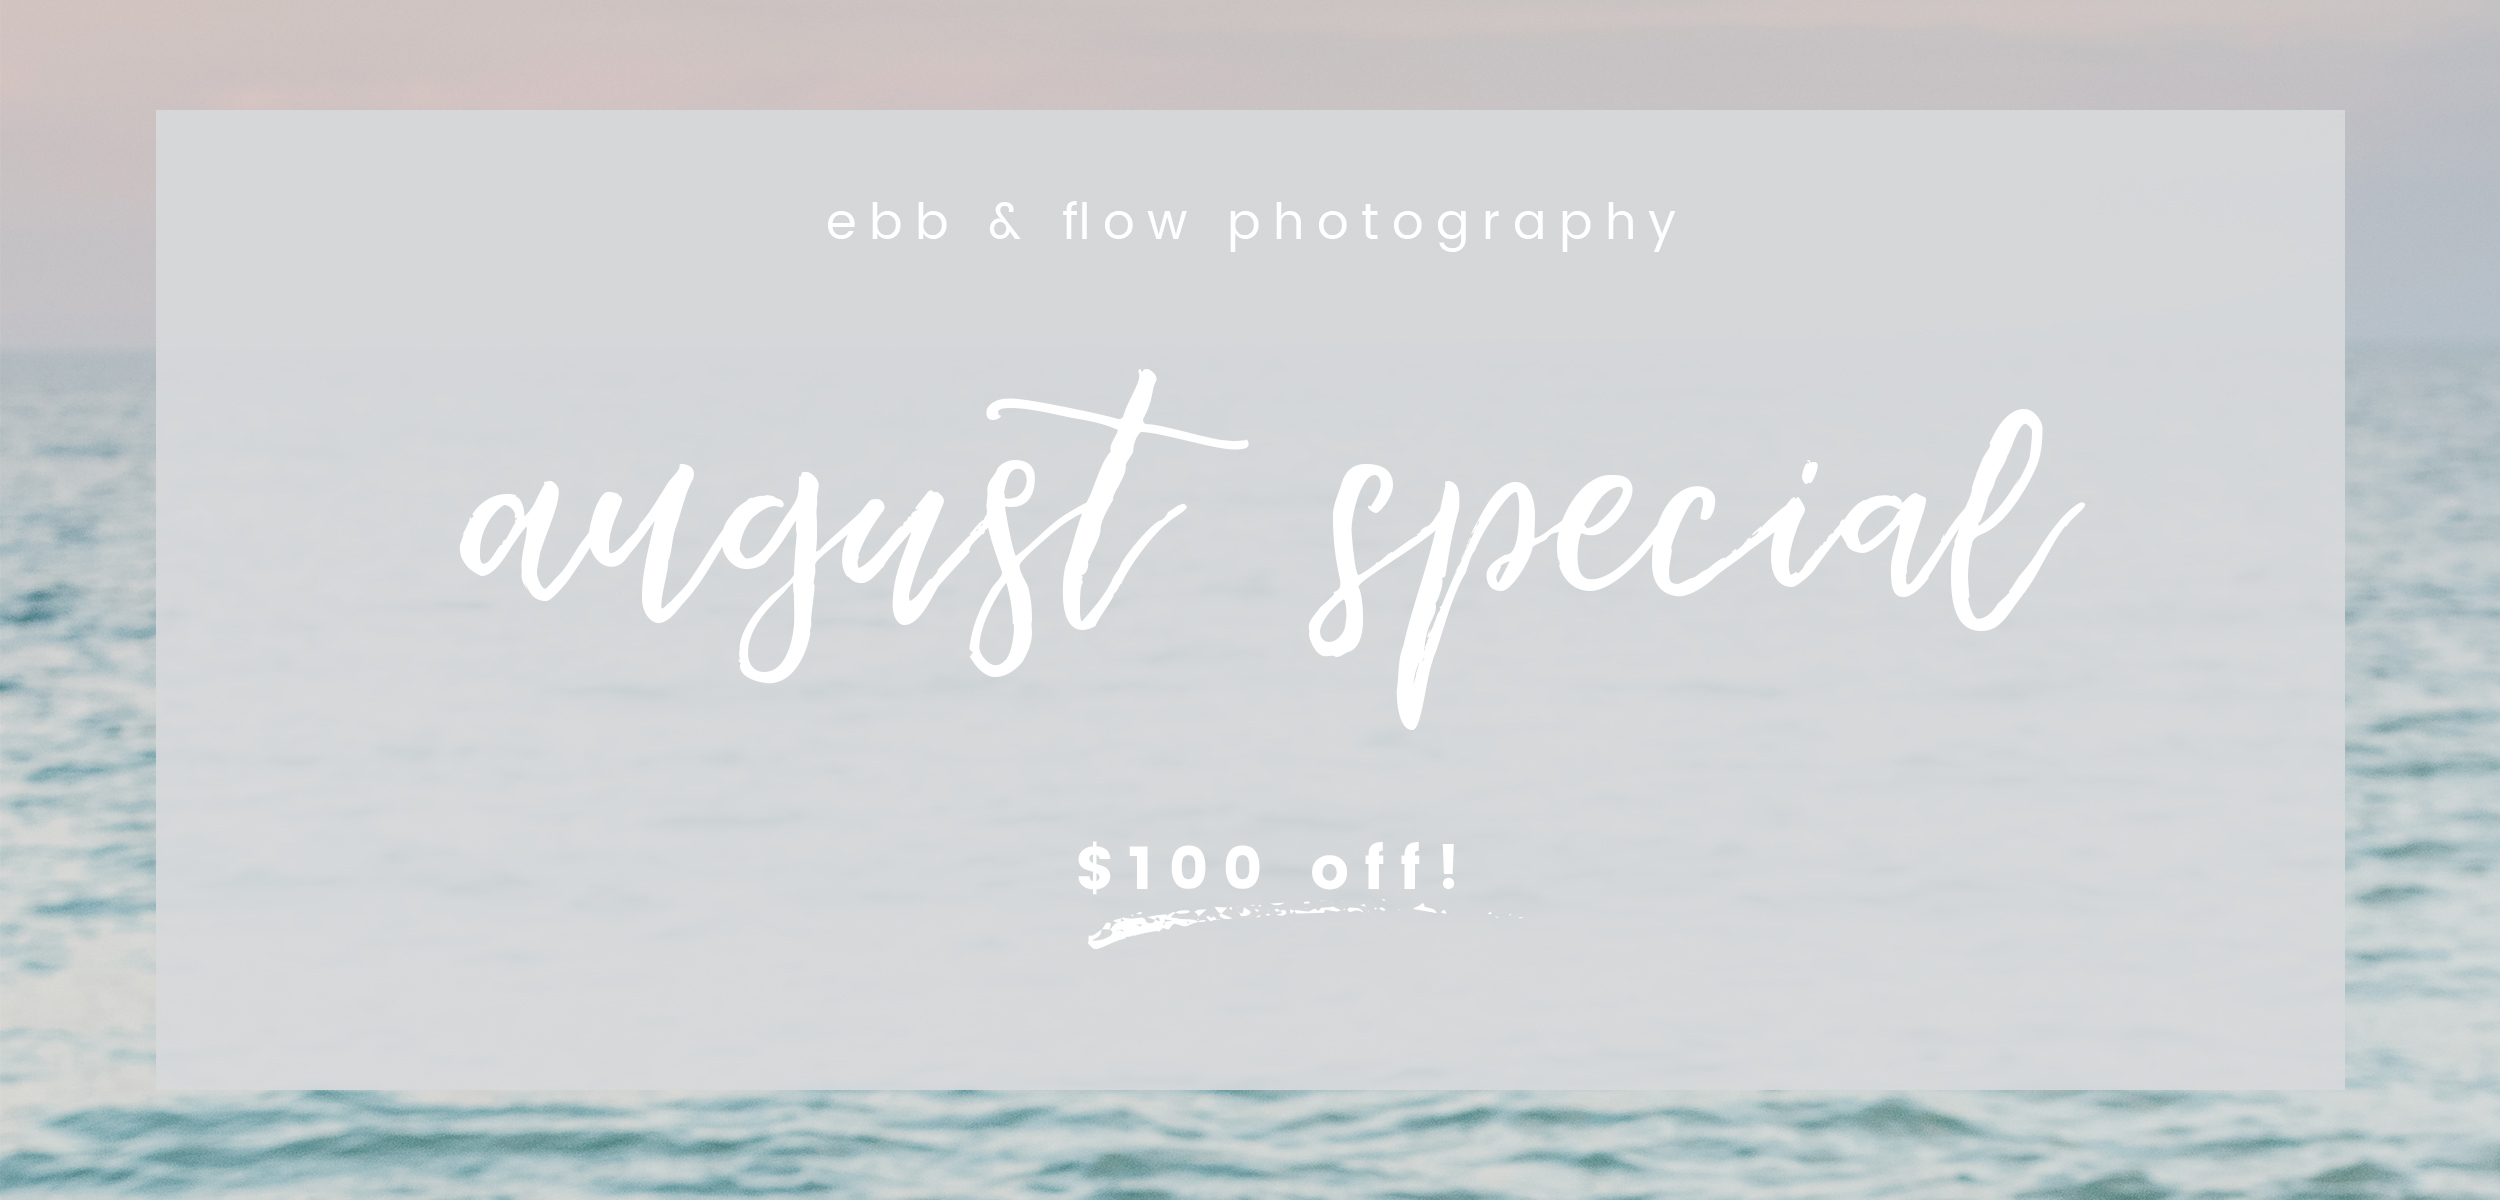 ebb and flow photography summer special